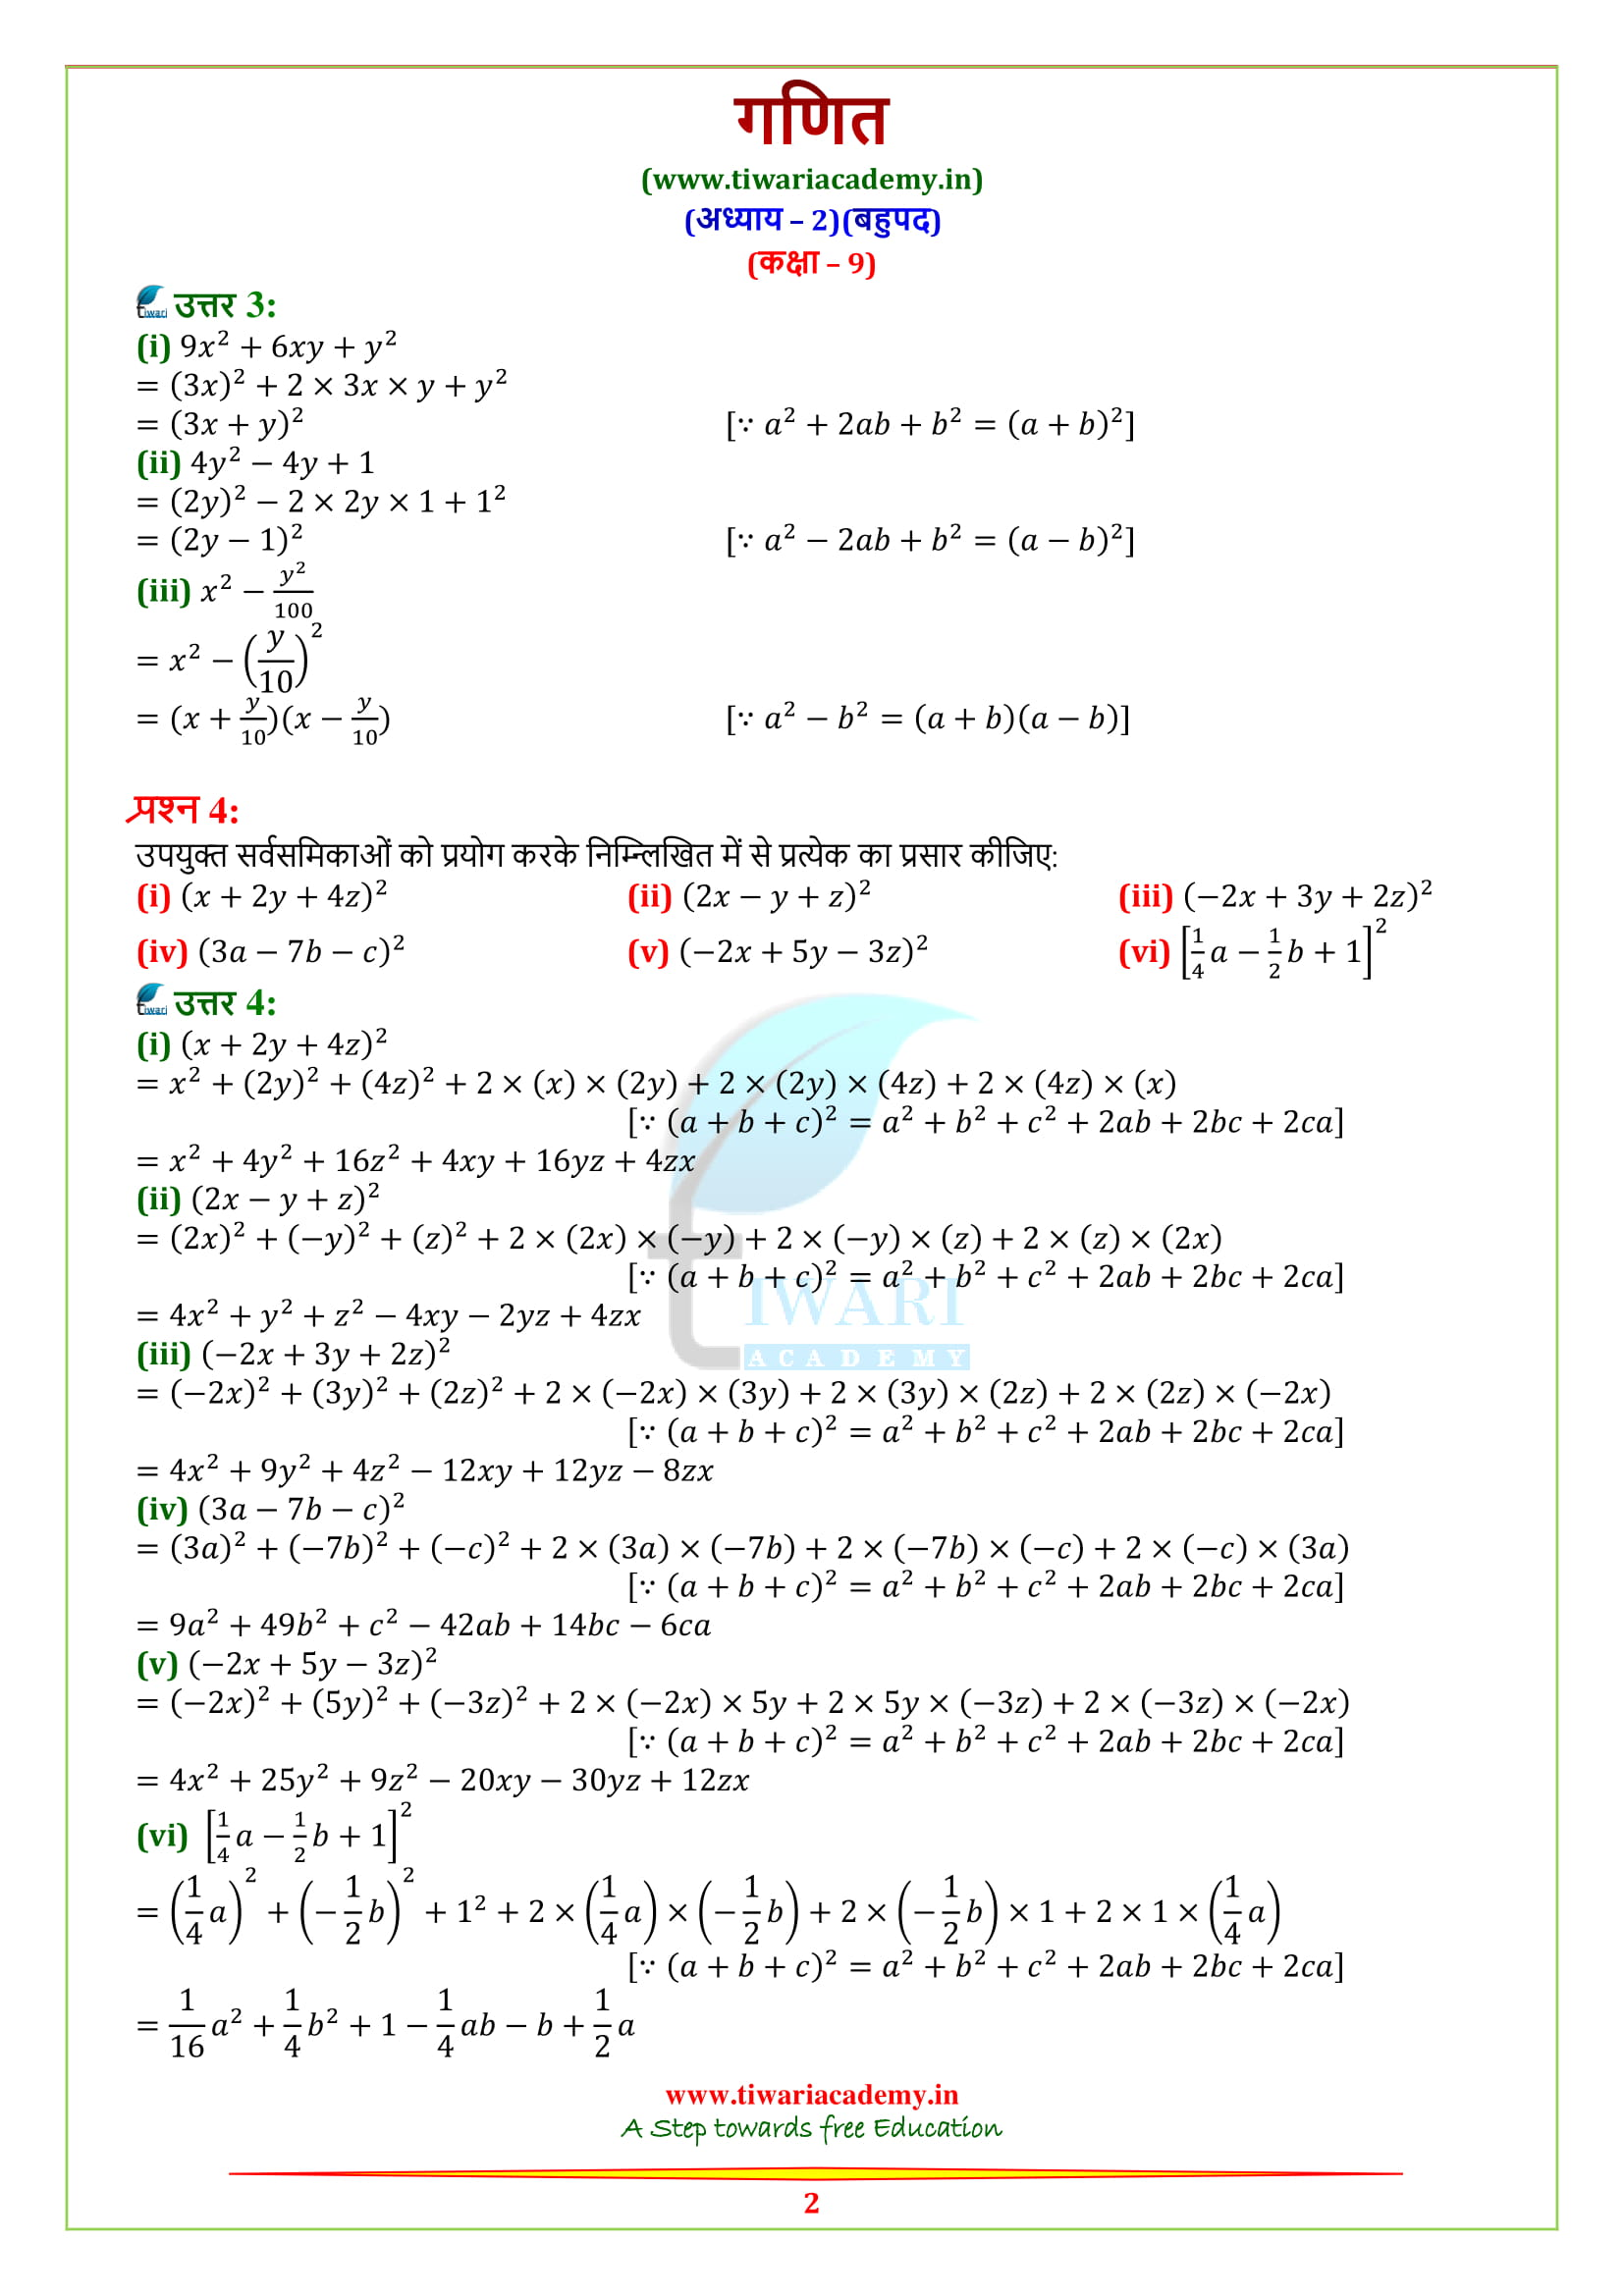 9 maths exercise 2.5 all questions guide hindi me